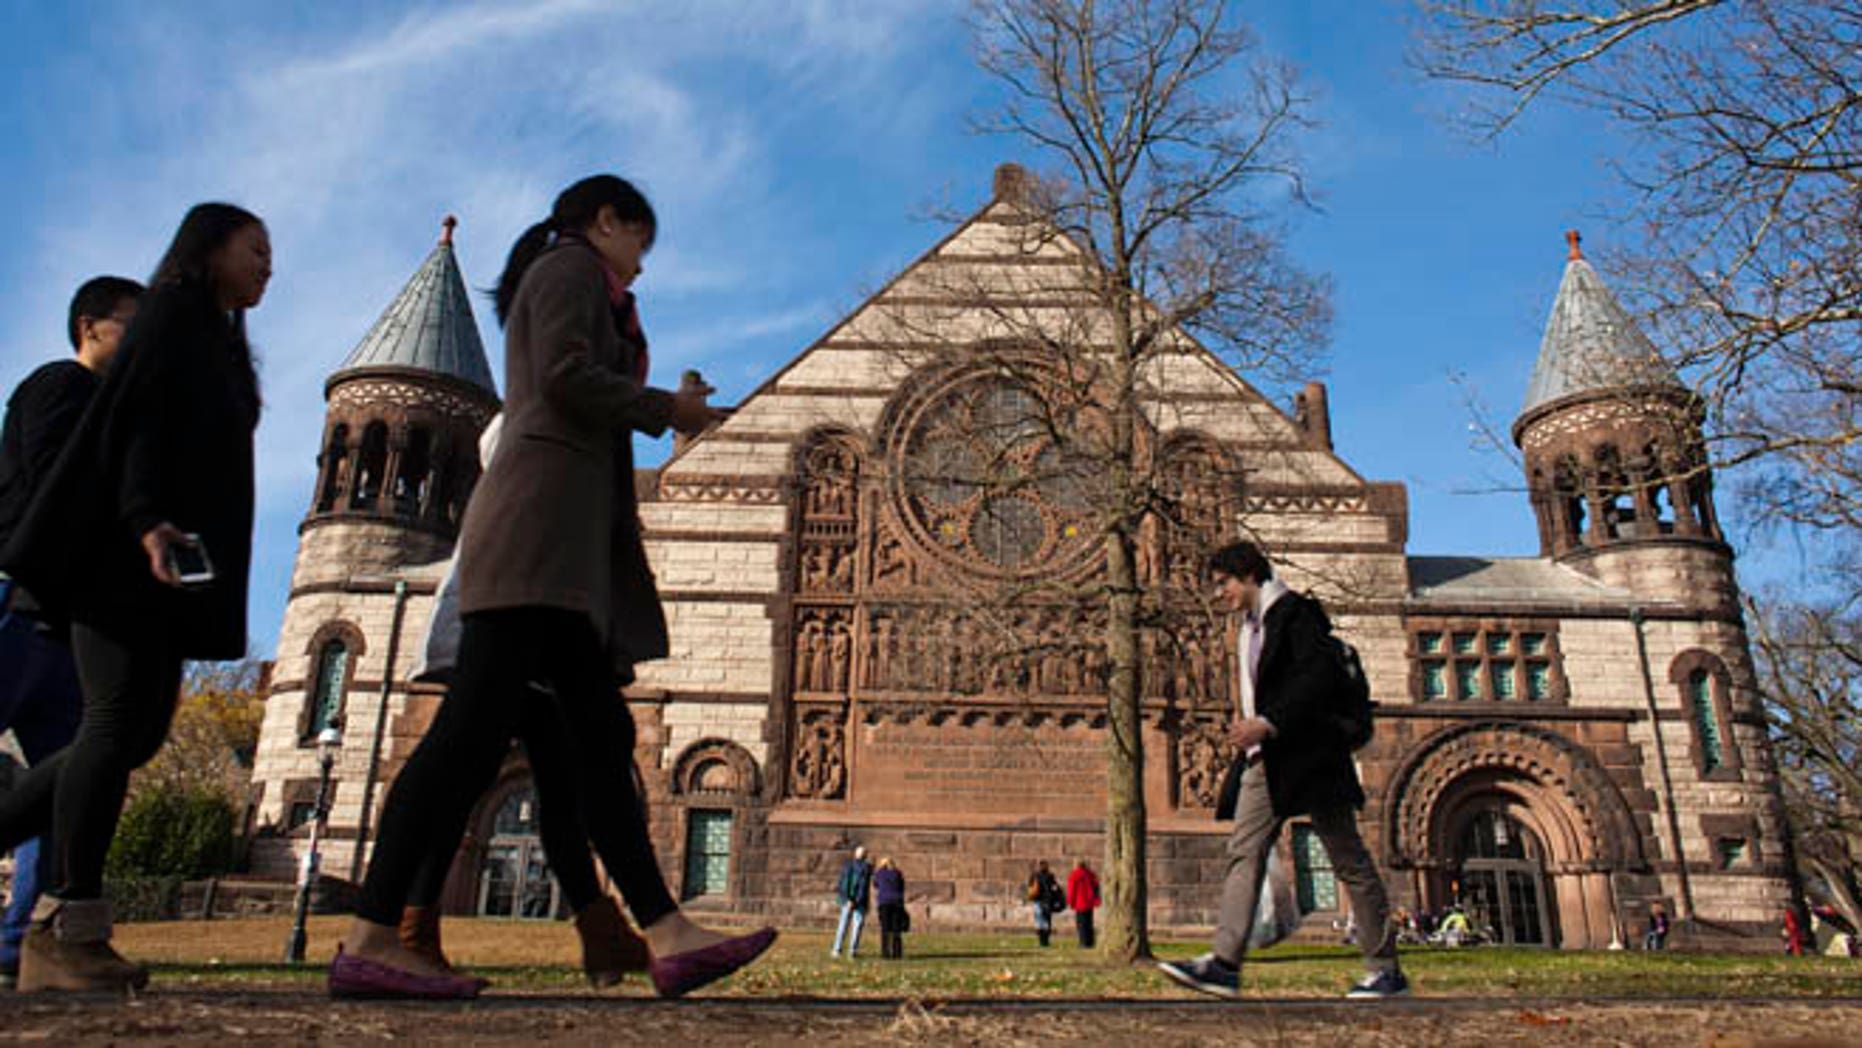 Students walk around on Princeton University's campus in New Jersey.